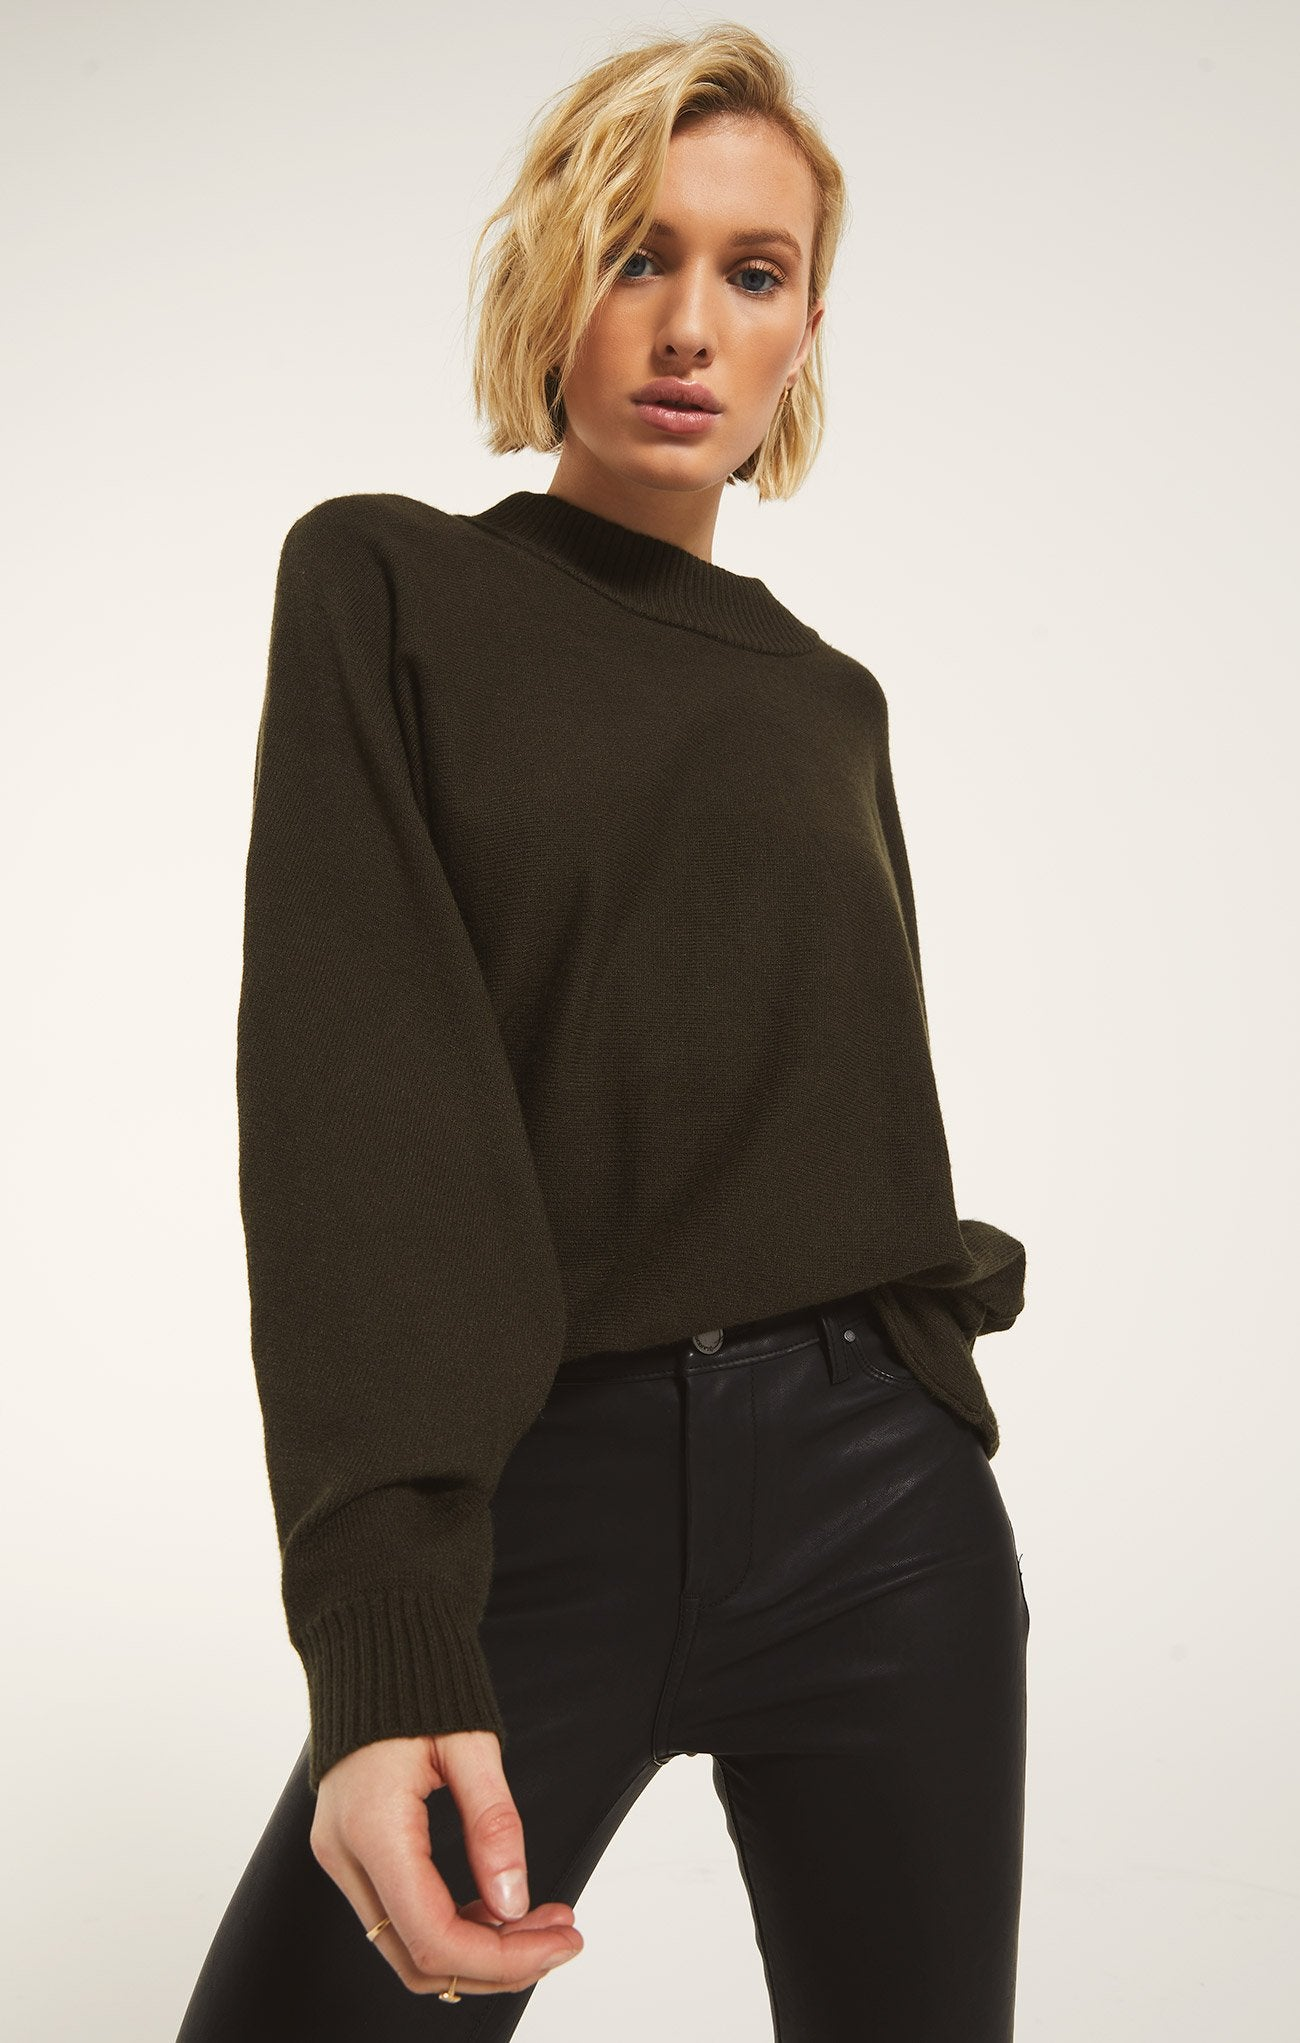 Innsbruck Sweater in Deep Olive